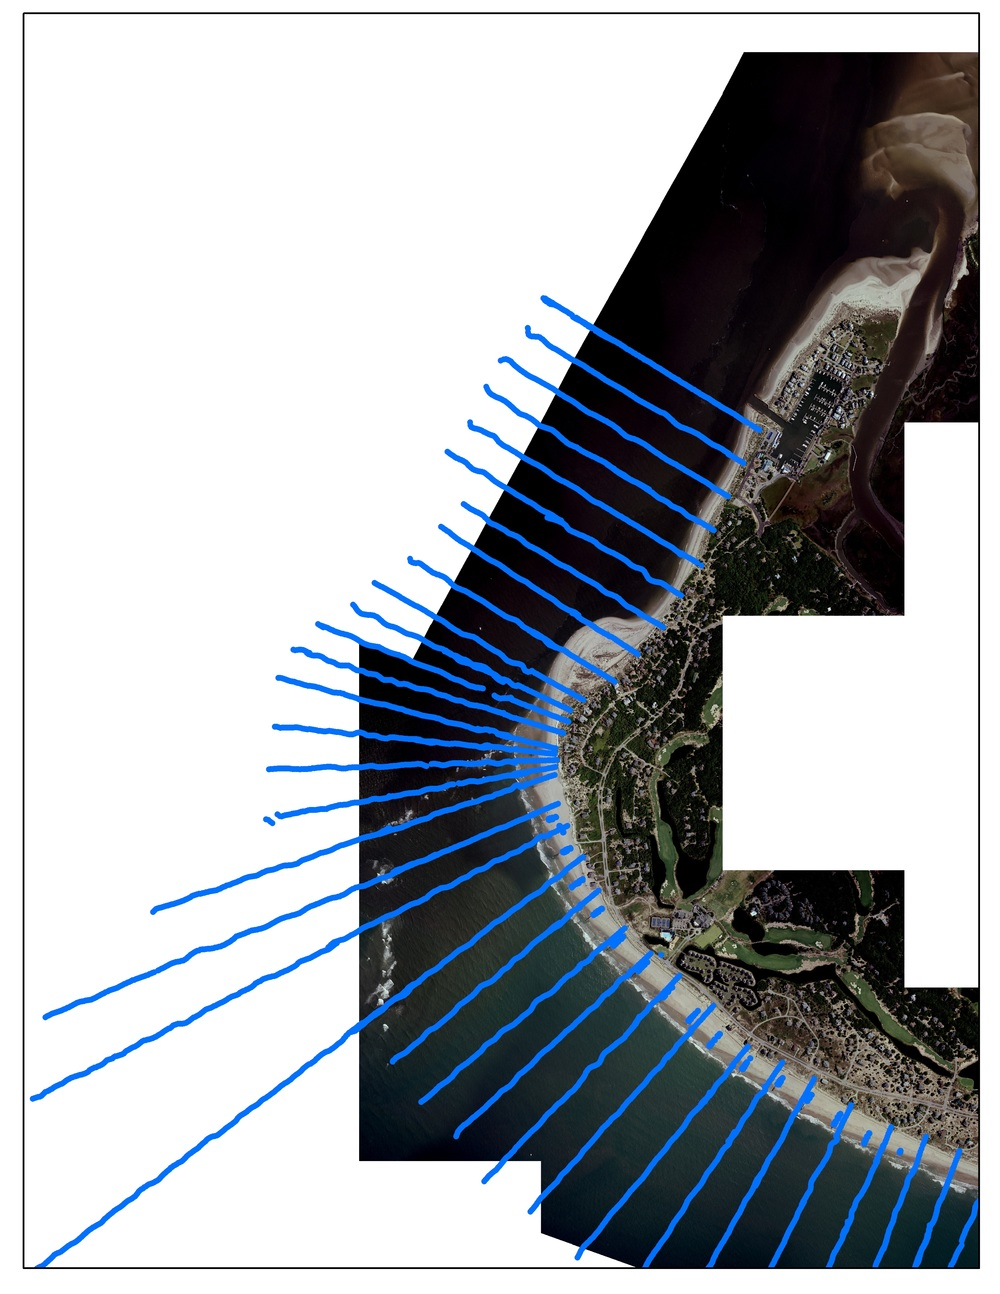 Beach and bathymetry profiles (blue) with 6 inch aerial photography